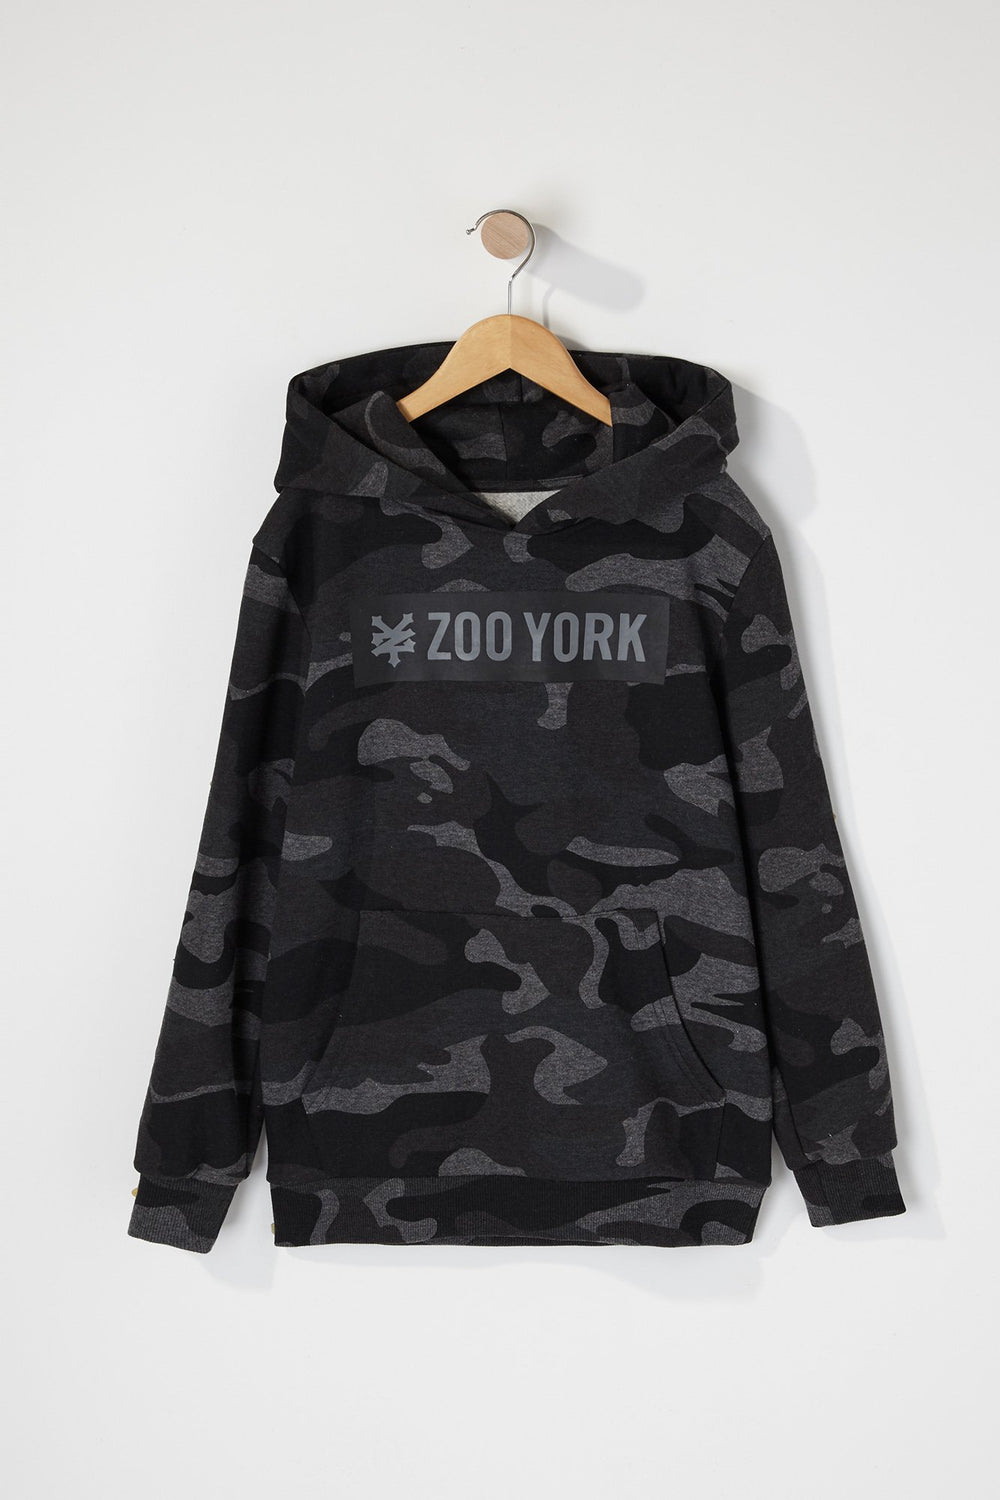 Zoo York Boys Camo Box Logo Hoodie Black with White